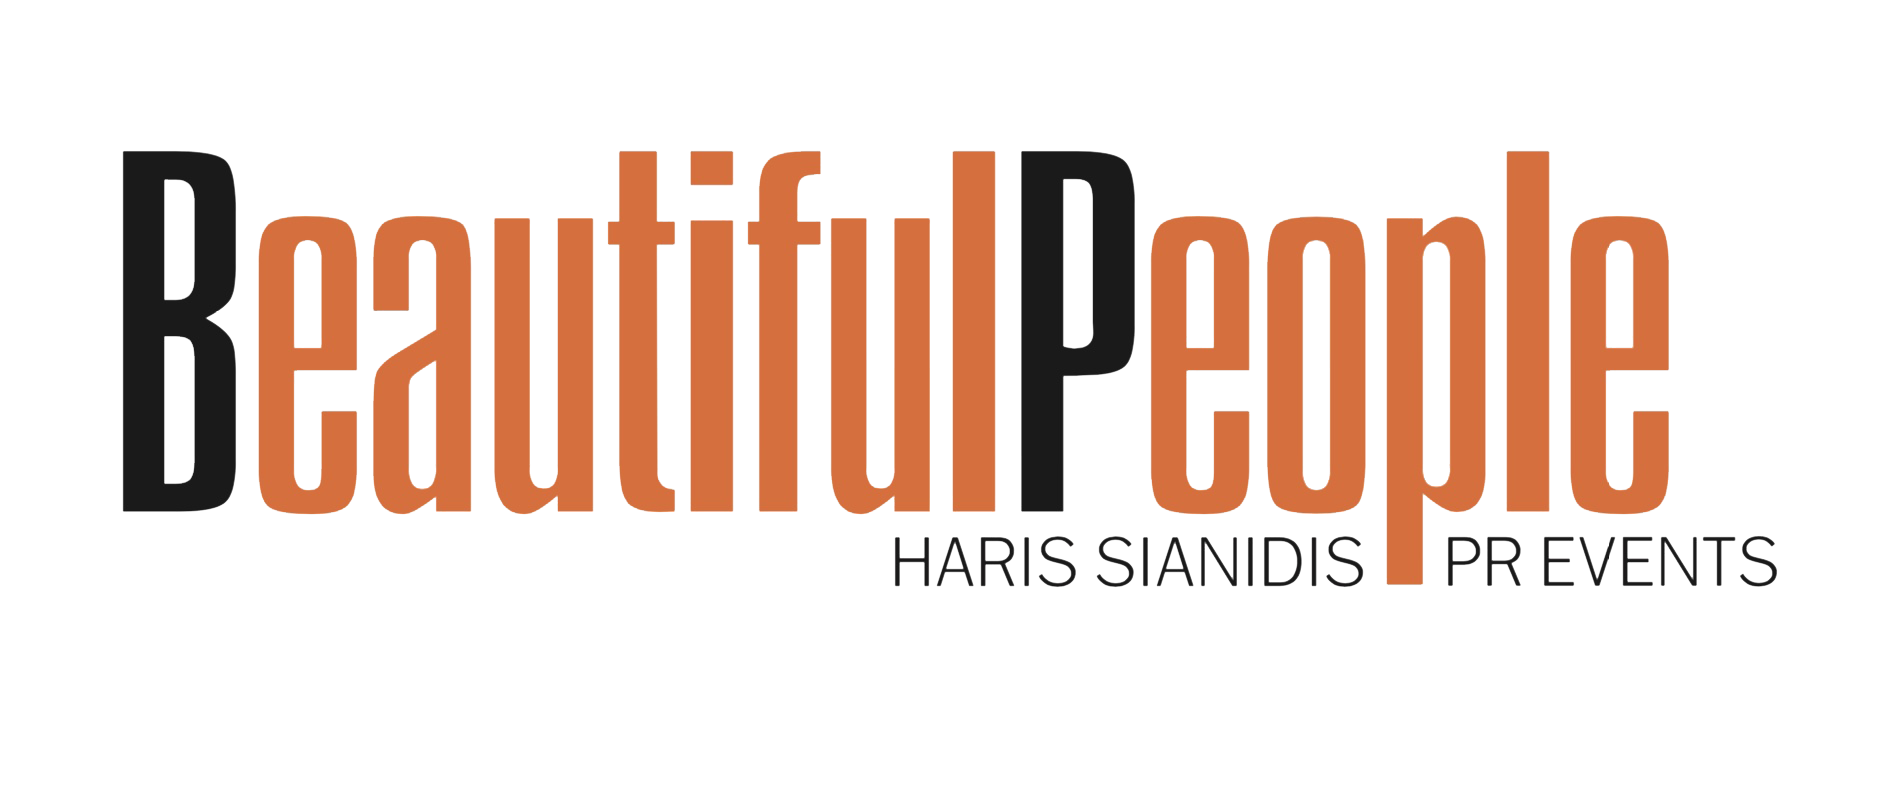 Haris Sianidis | Beautiful People